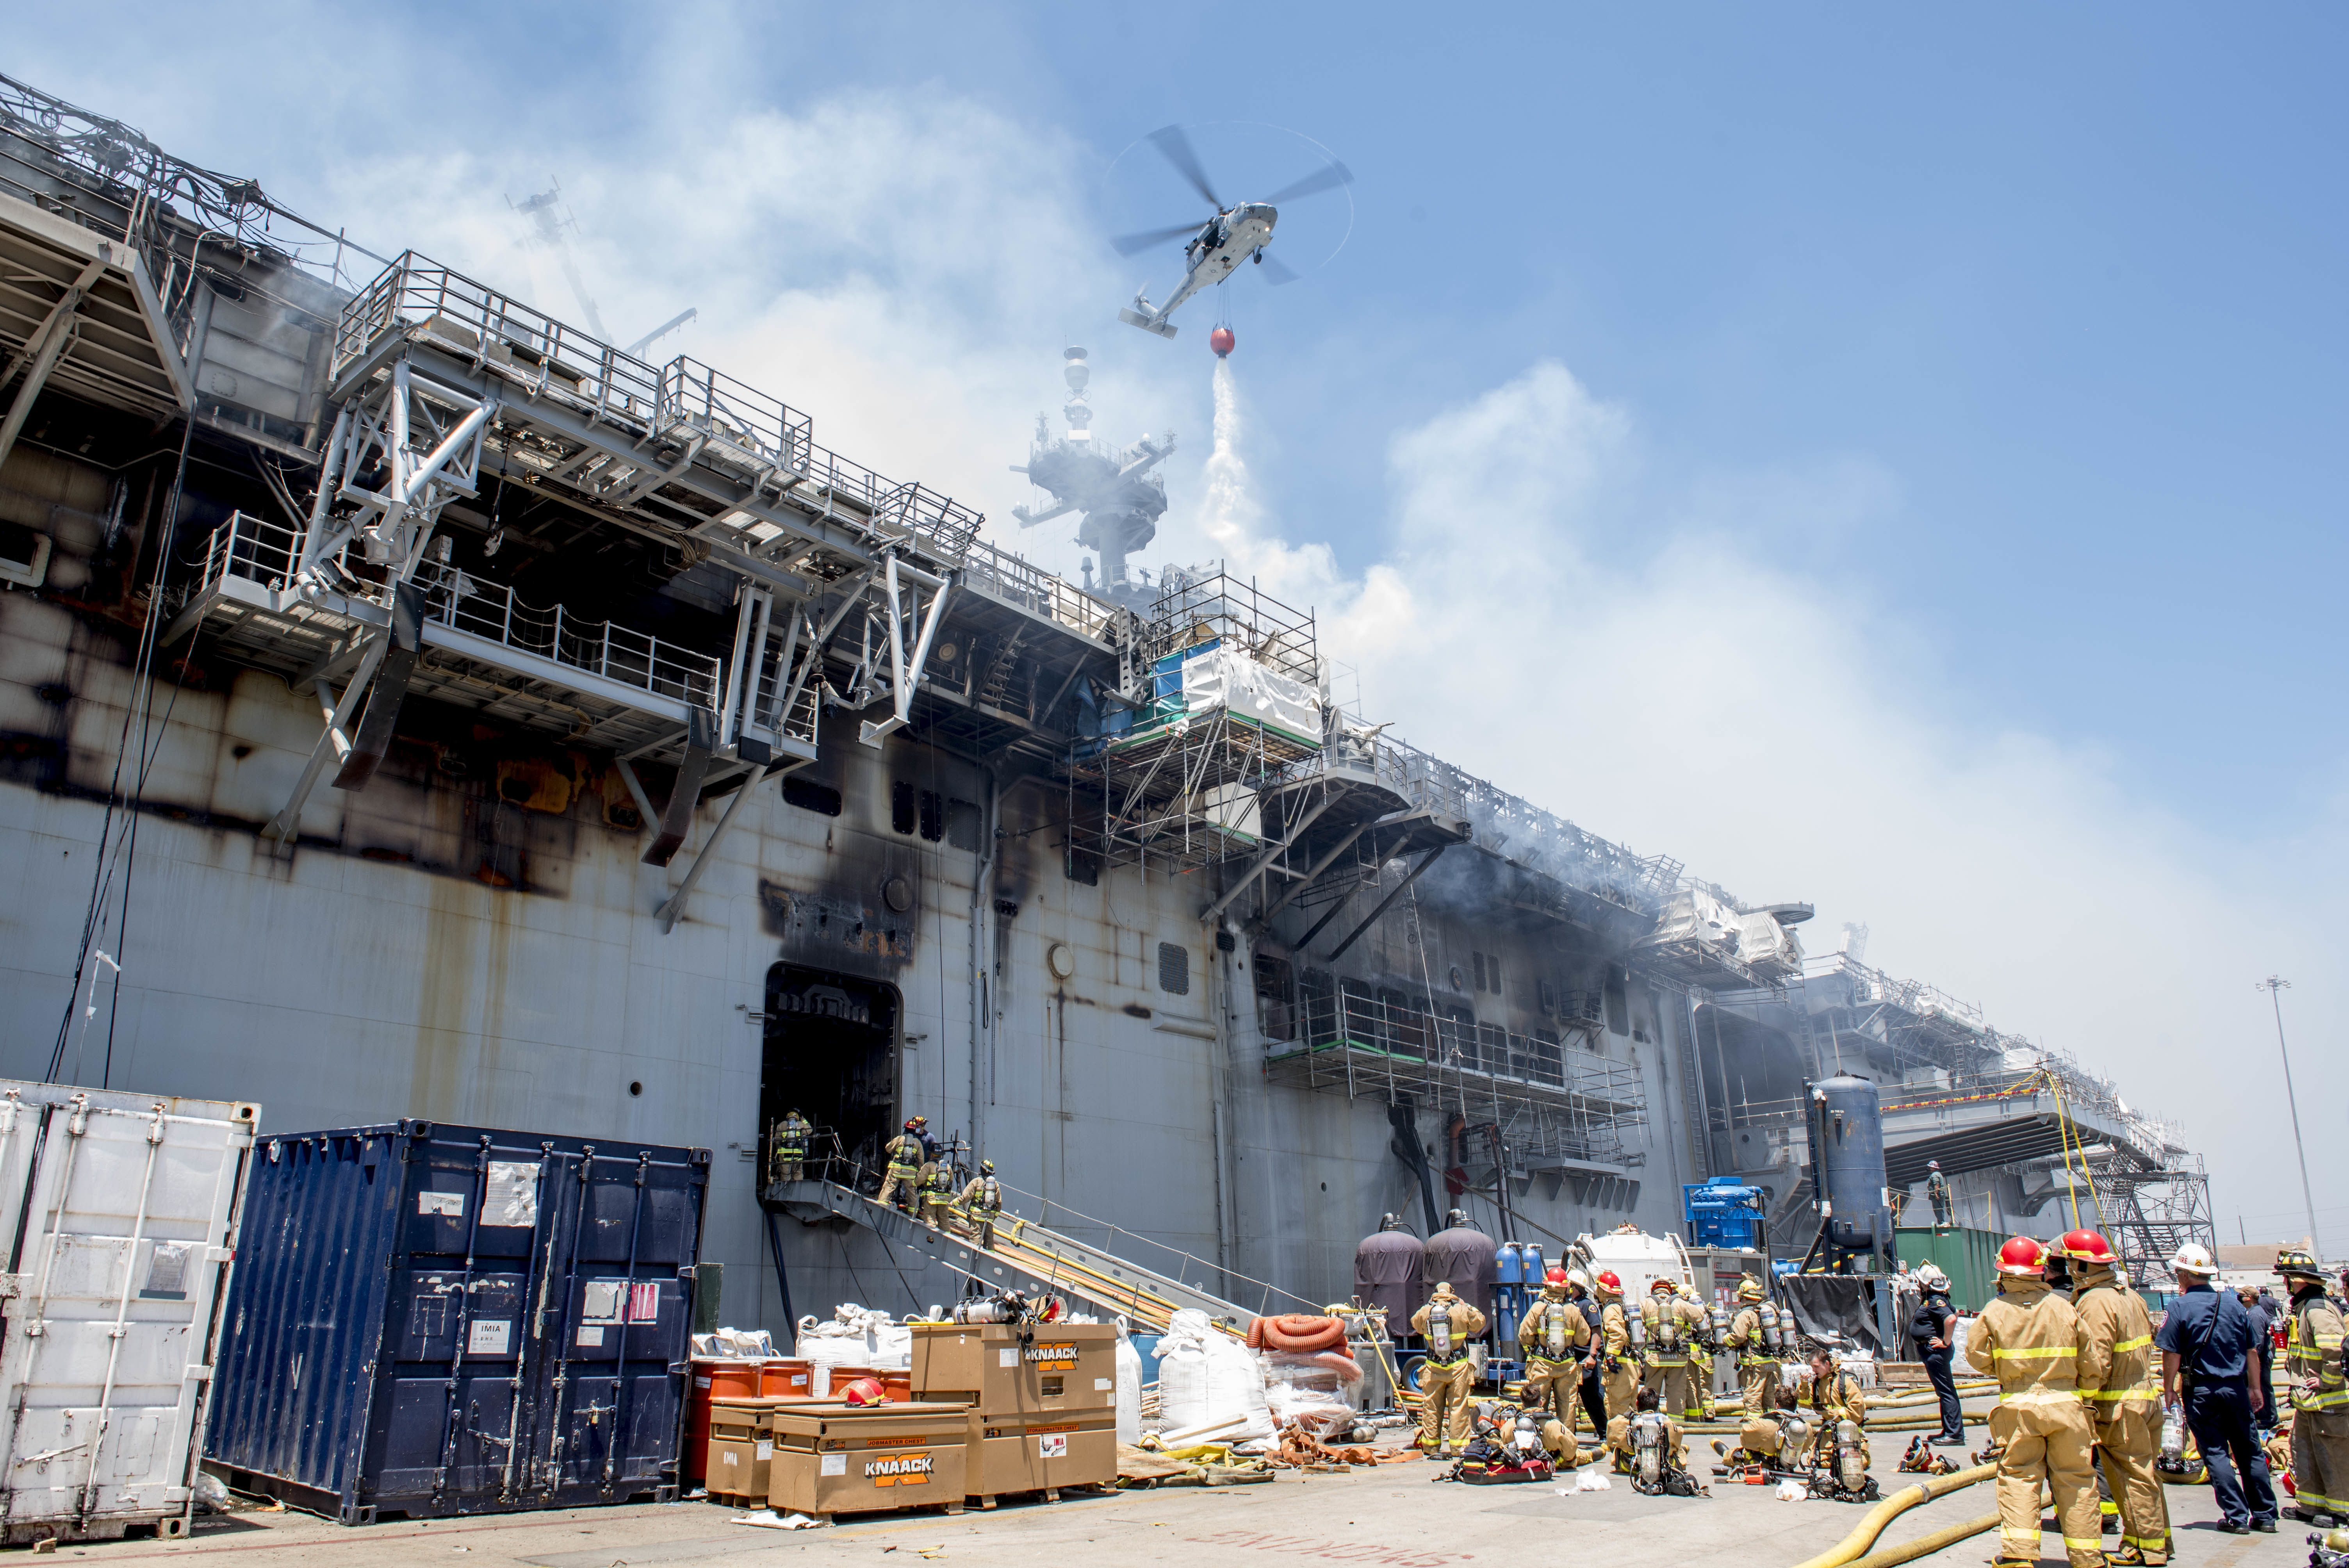 A Helicopter Combats A Fire Aboard The Amphibious Assault Ship Uss Bonhomme Richard Lhd 6 On The Morning Of July 12 A Fire Was In 2020 Naval Navy Day Cool Pictures